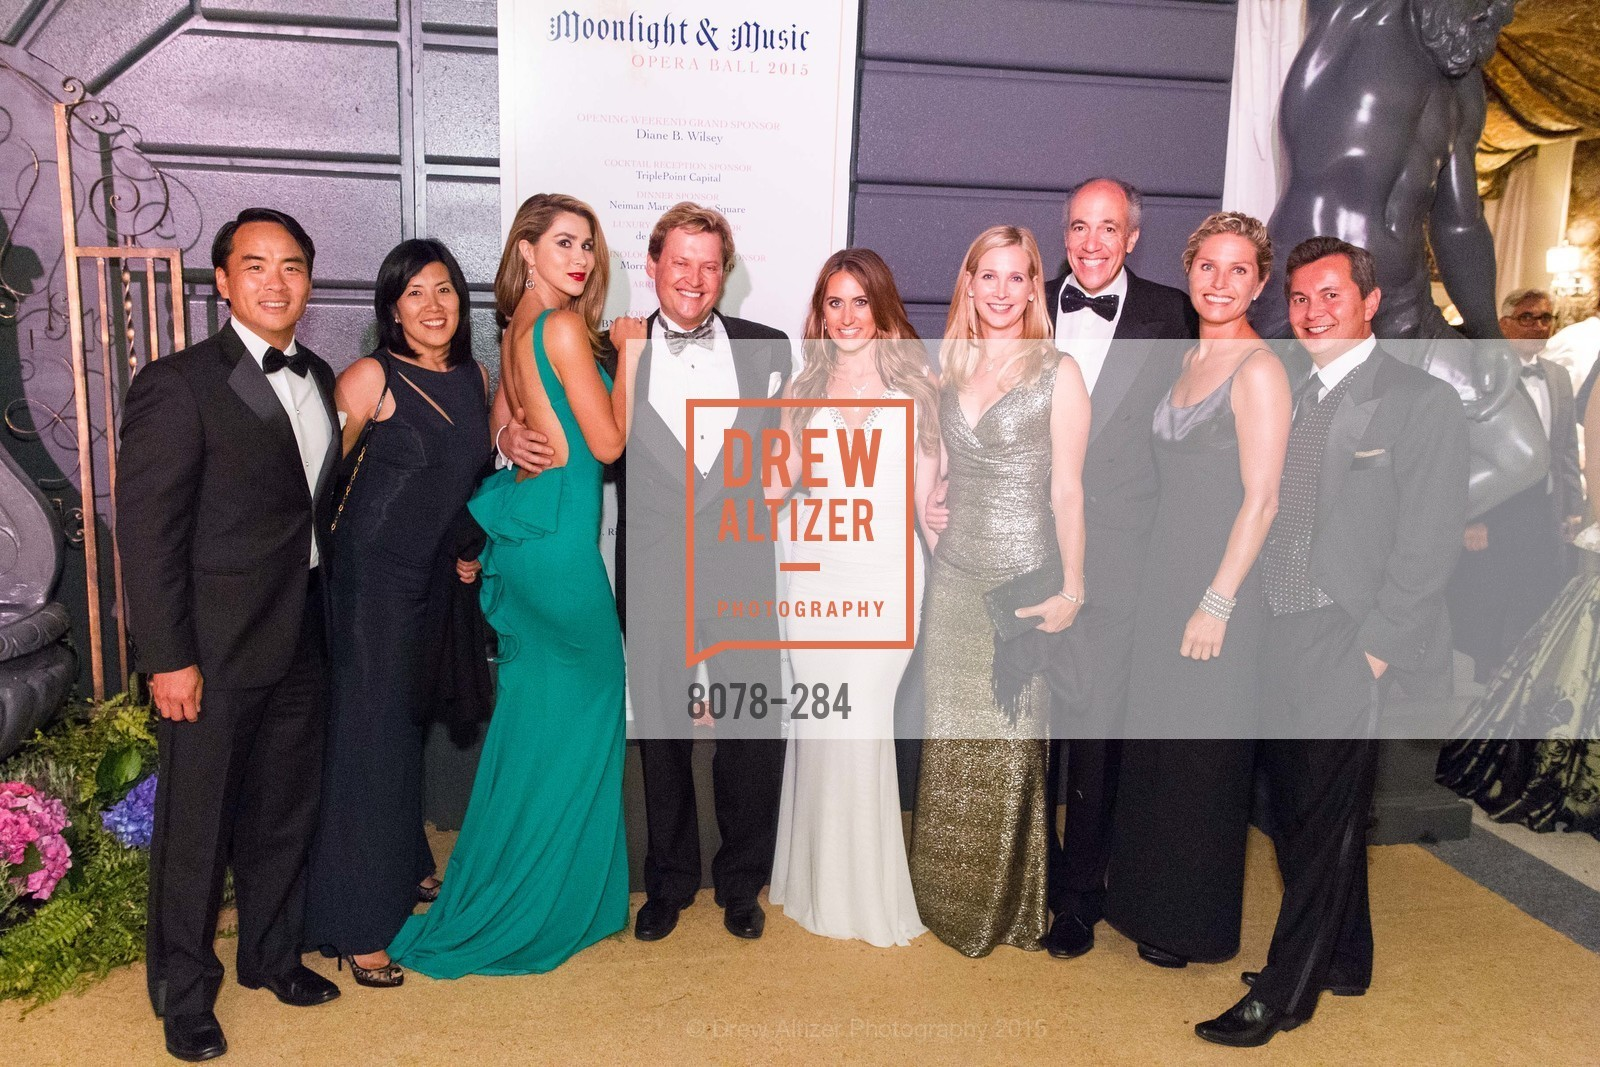 Victor Wong, Yiling Chen, Jonathan Tower, Courtney DeCastanzo, Courtney Labe, James Labe, Hillary McGonigle Michael Uytengsu, Opera Ball 2015: Moonlight & Music, War Memorial Opera House. 301 Van Ness Ave, September 11th, 2015,Drew Altizer, Drew Altizer Photography, full-service agency, private events, San Francisco photographer, photographer california